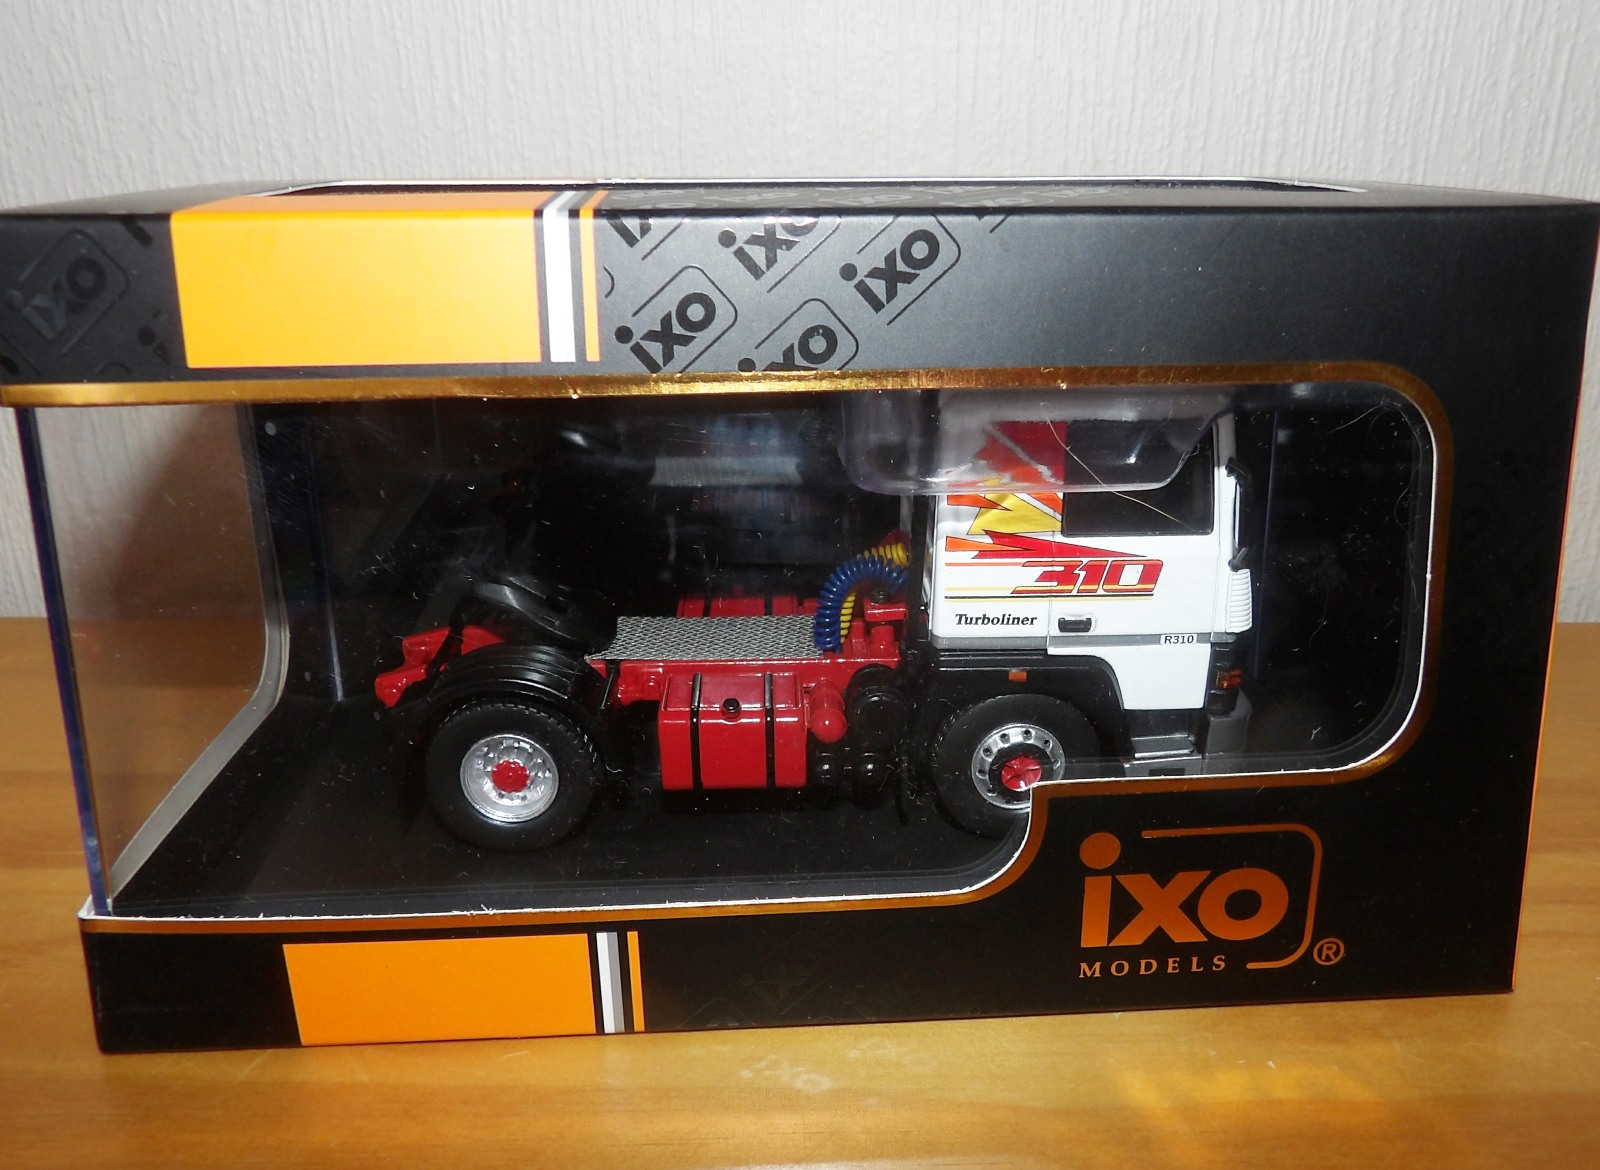 Lot 710 - 1.43 Scale IXO Renault R310 Turboliner 1986 Tractor Unit. P&P Group 1 (£14+VAT for the first lot and